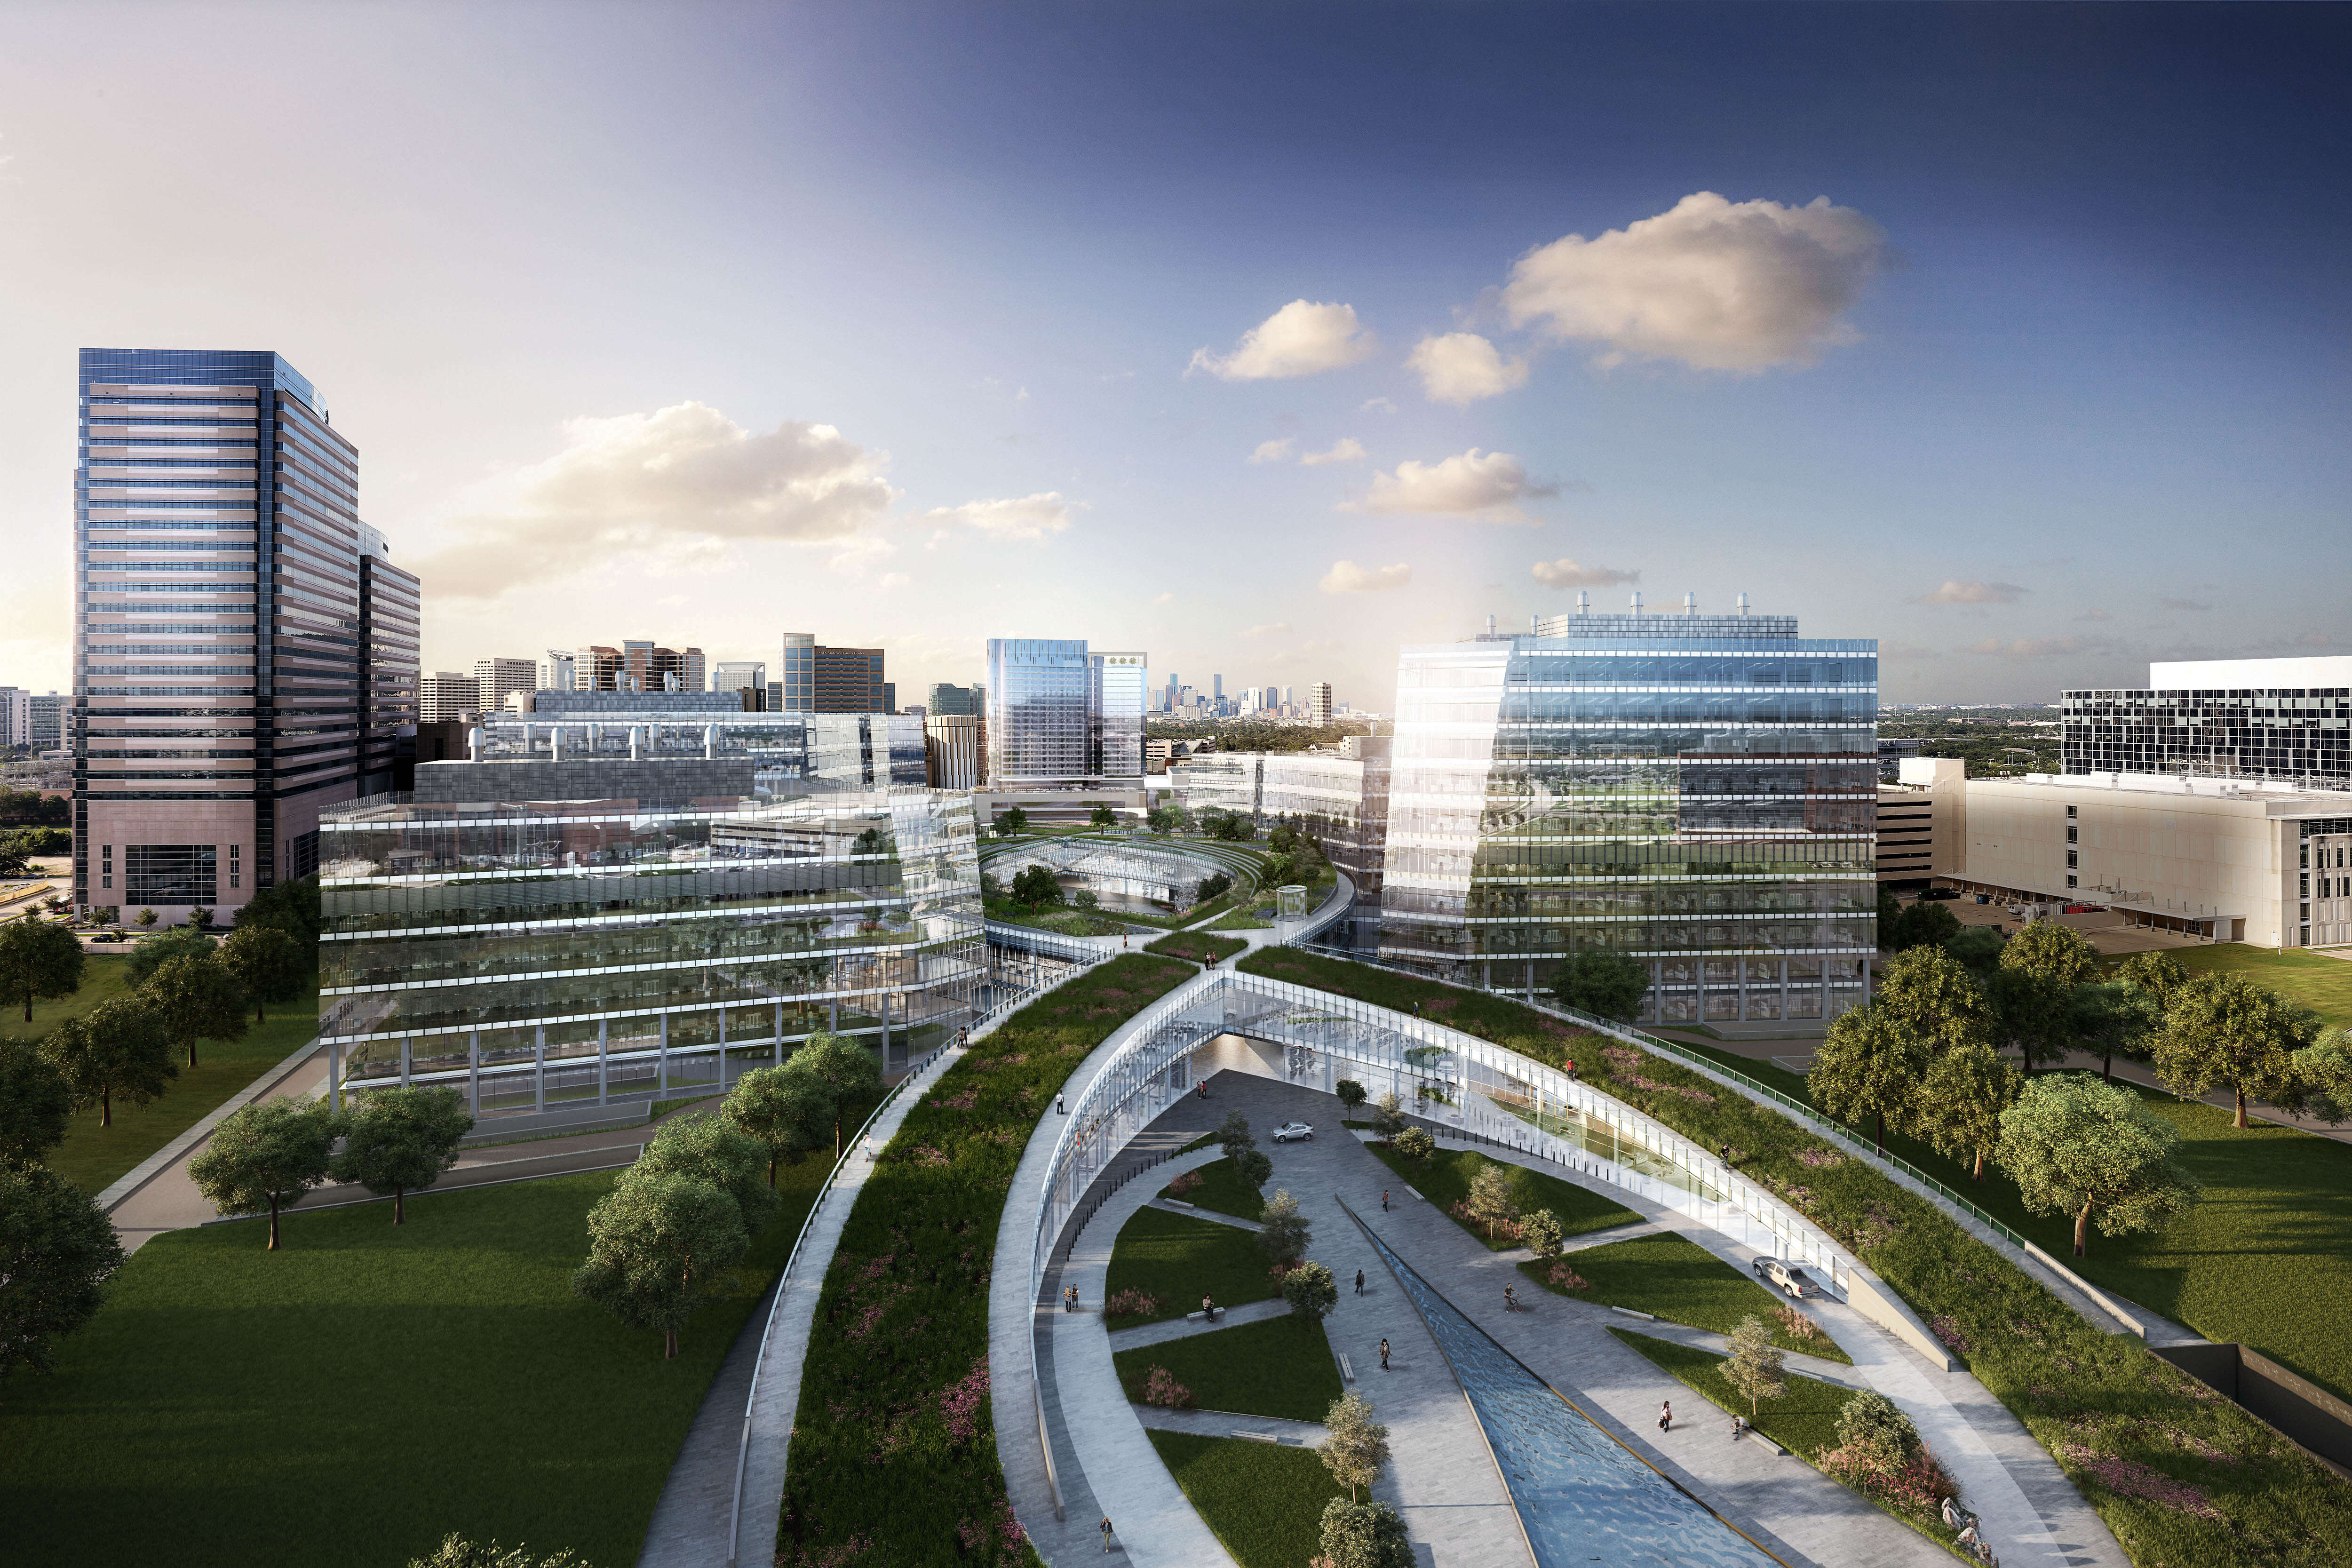 A rendering of TMC3's double helix shows a three-tiered structure that will connect all the buildings on campus.